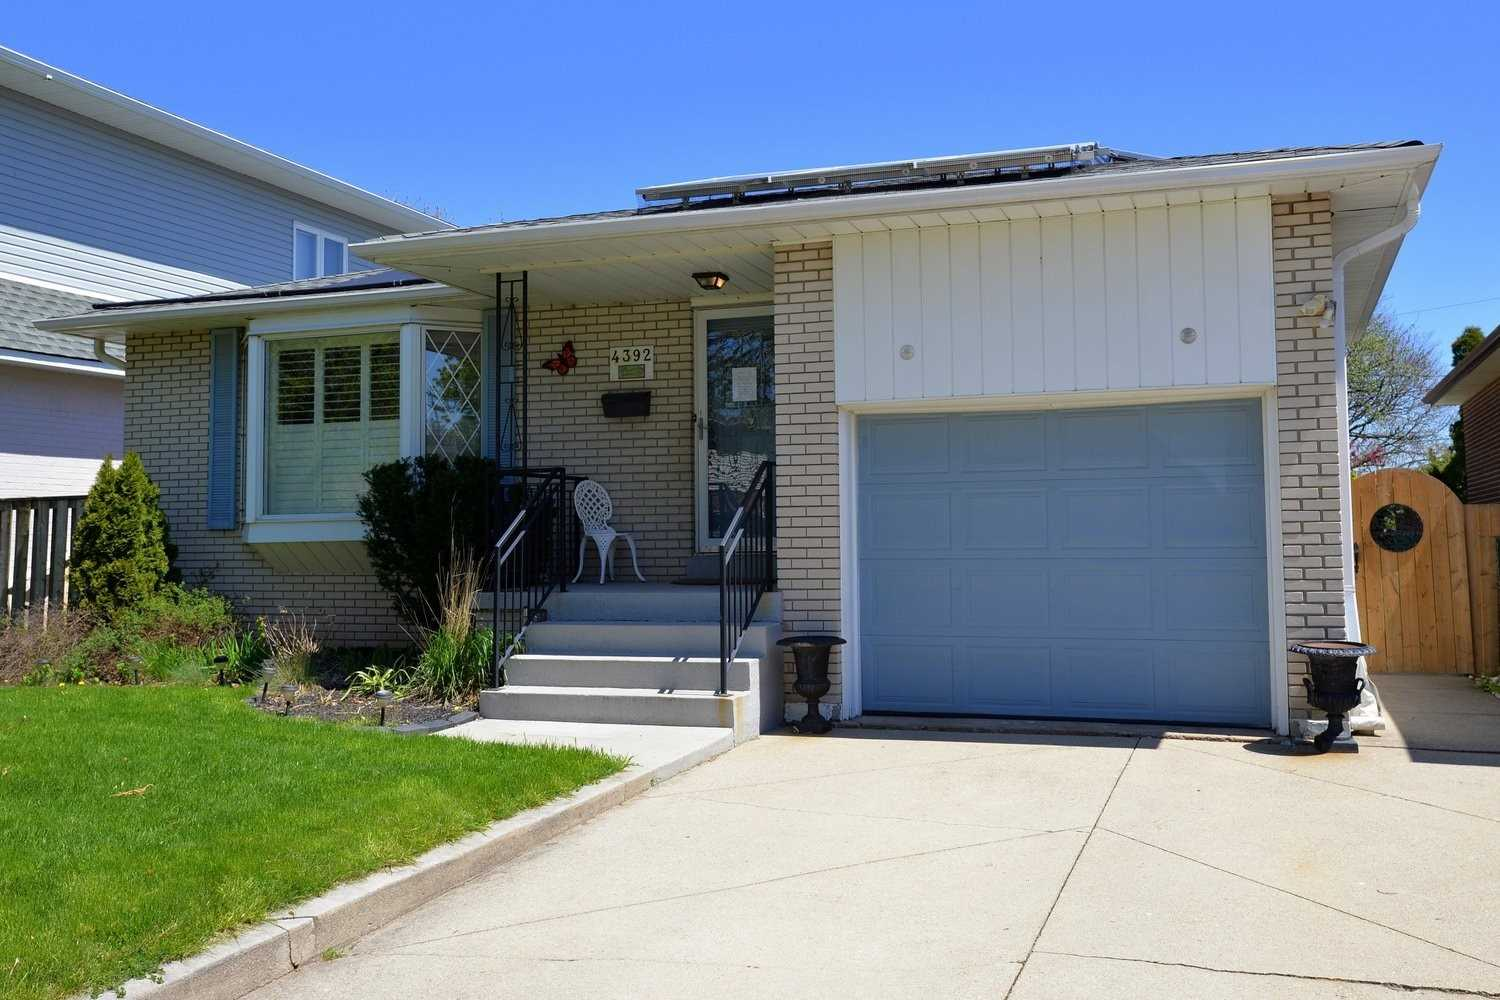 4392 Bennett Rd, Burlington, L7L1Y7, 3 Bedrooms Bedrooms, ,2 BathroomsBathrooms,Detached,For Sale,Bennett,W4768399